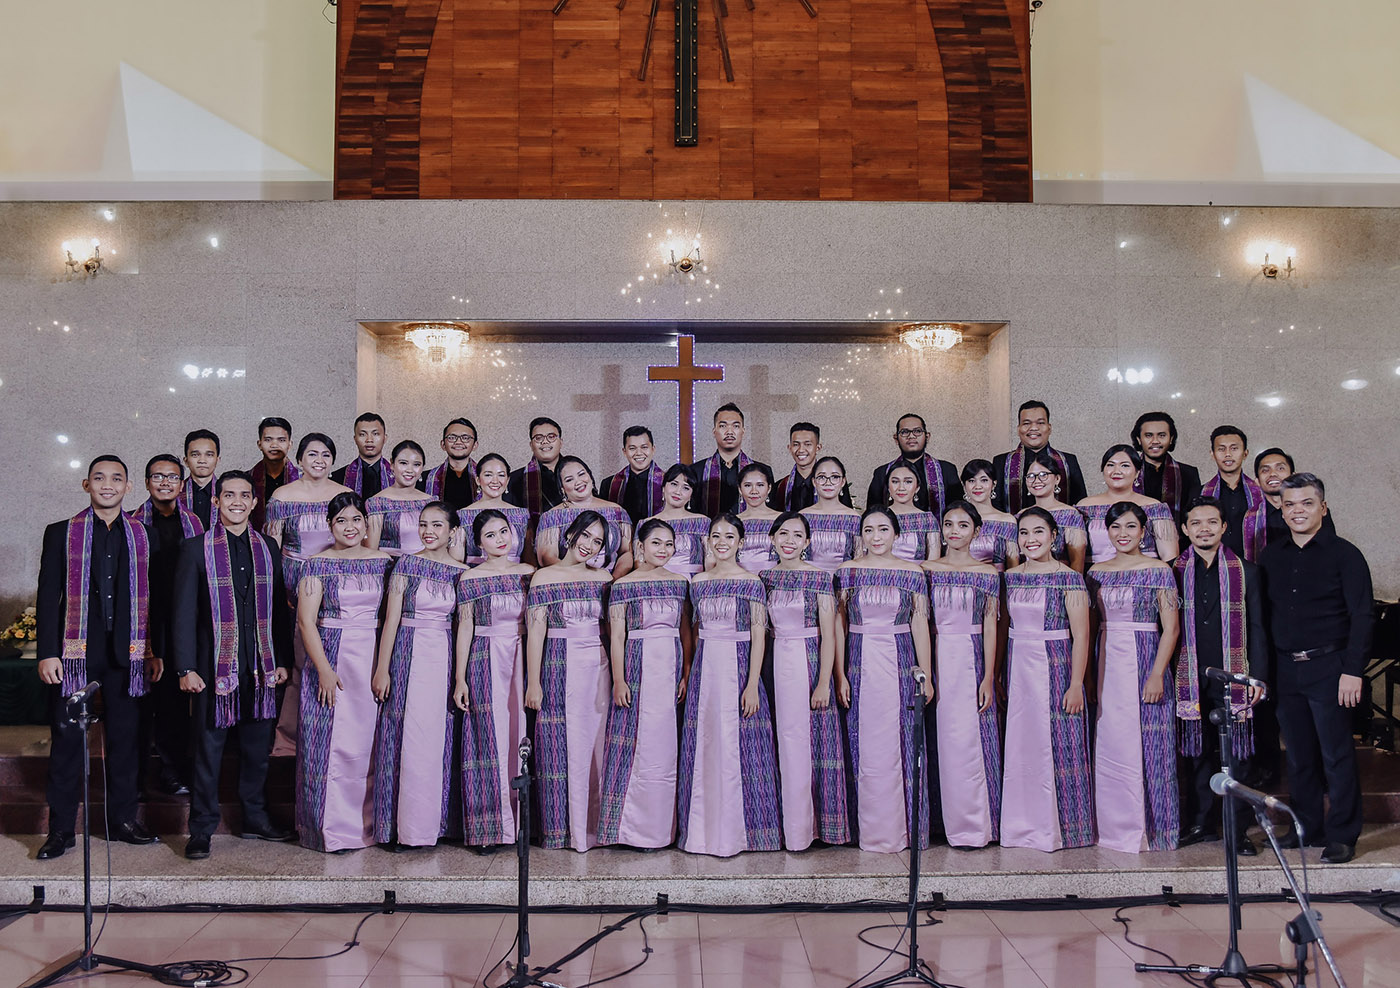 CCP Holds 1st Asia Choral Grand Prix at the CCP in July